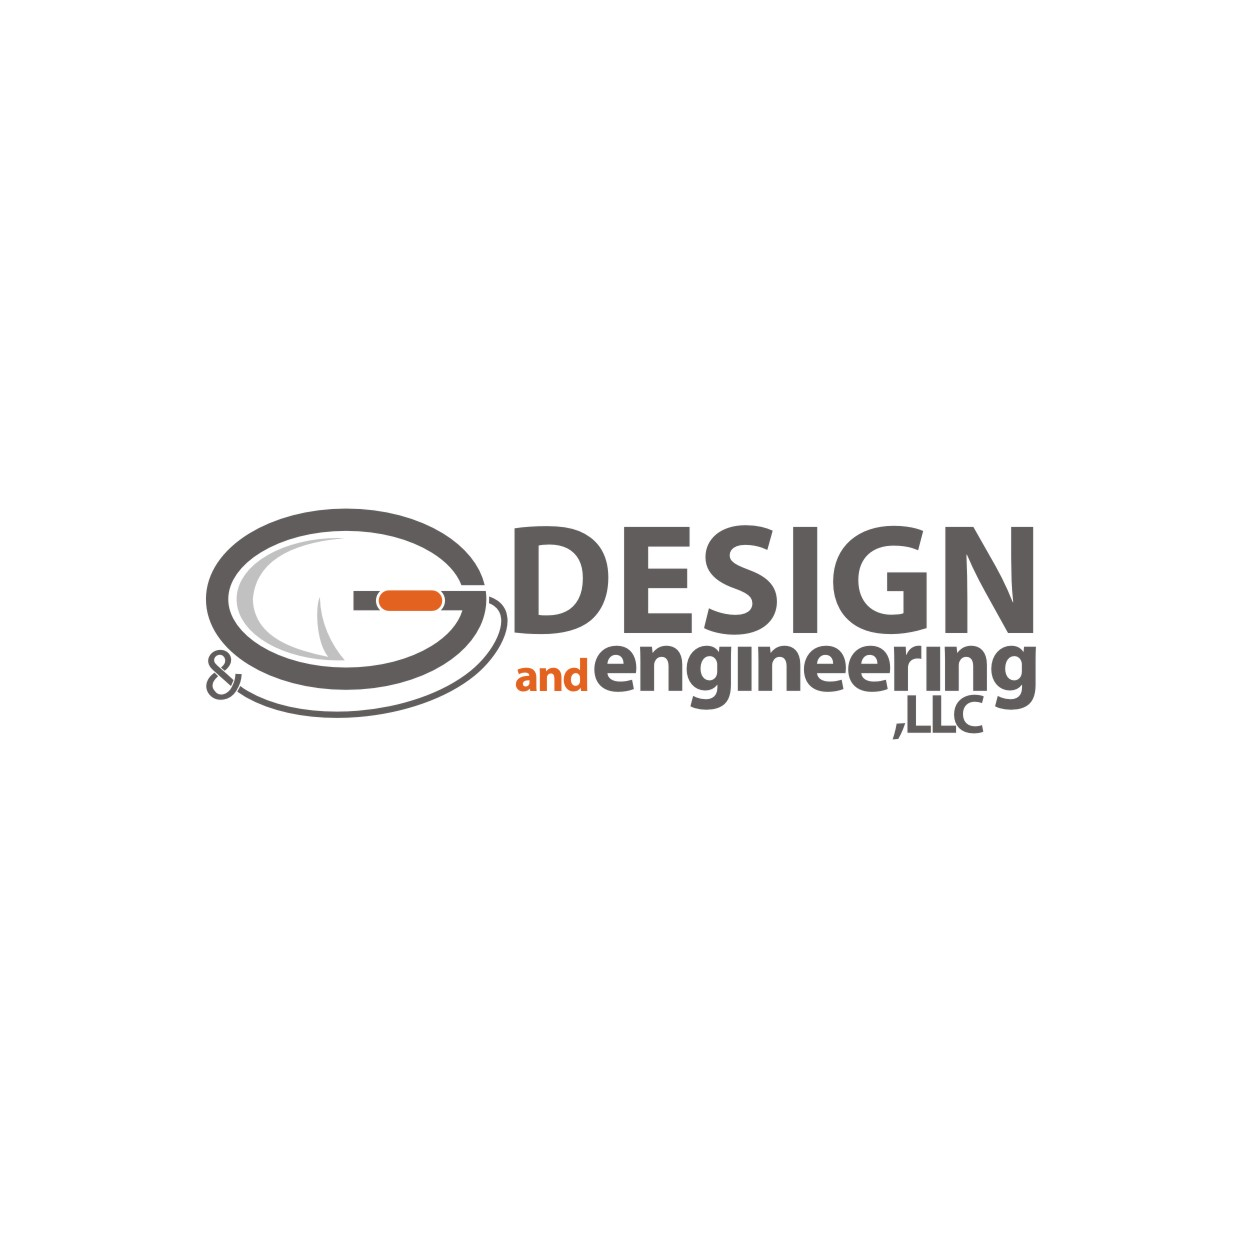 Logo Design by jalal - Entry No. 64 in the Logo Design Contest Creative Logo Design for G&G Design and Engineering, LLC.